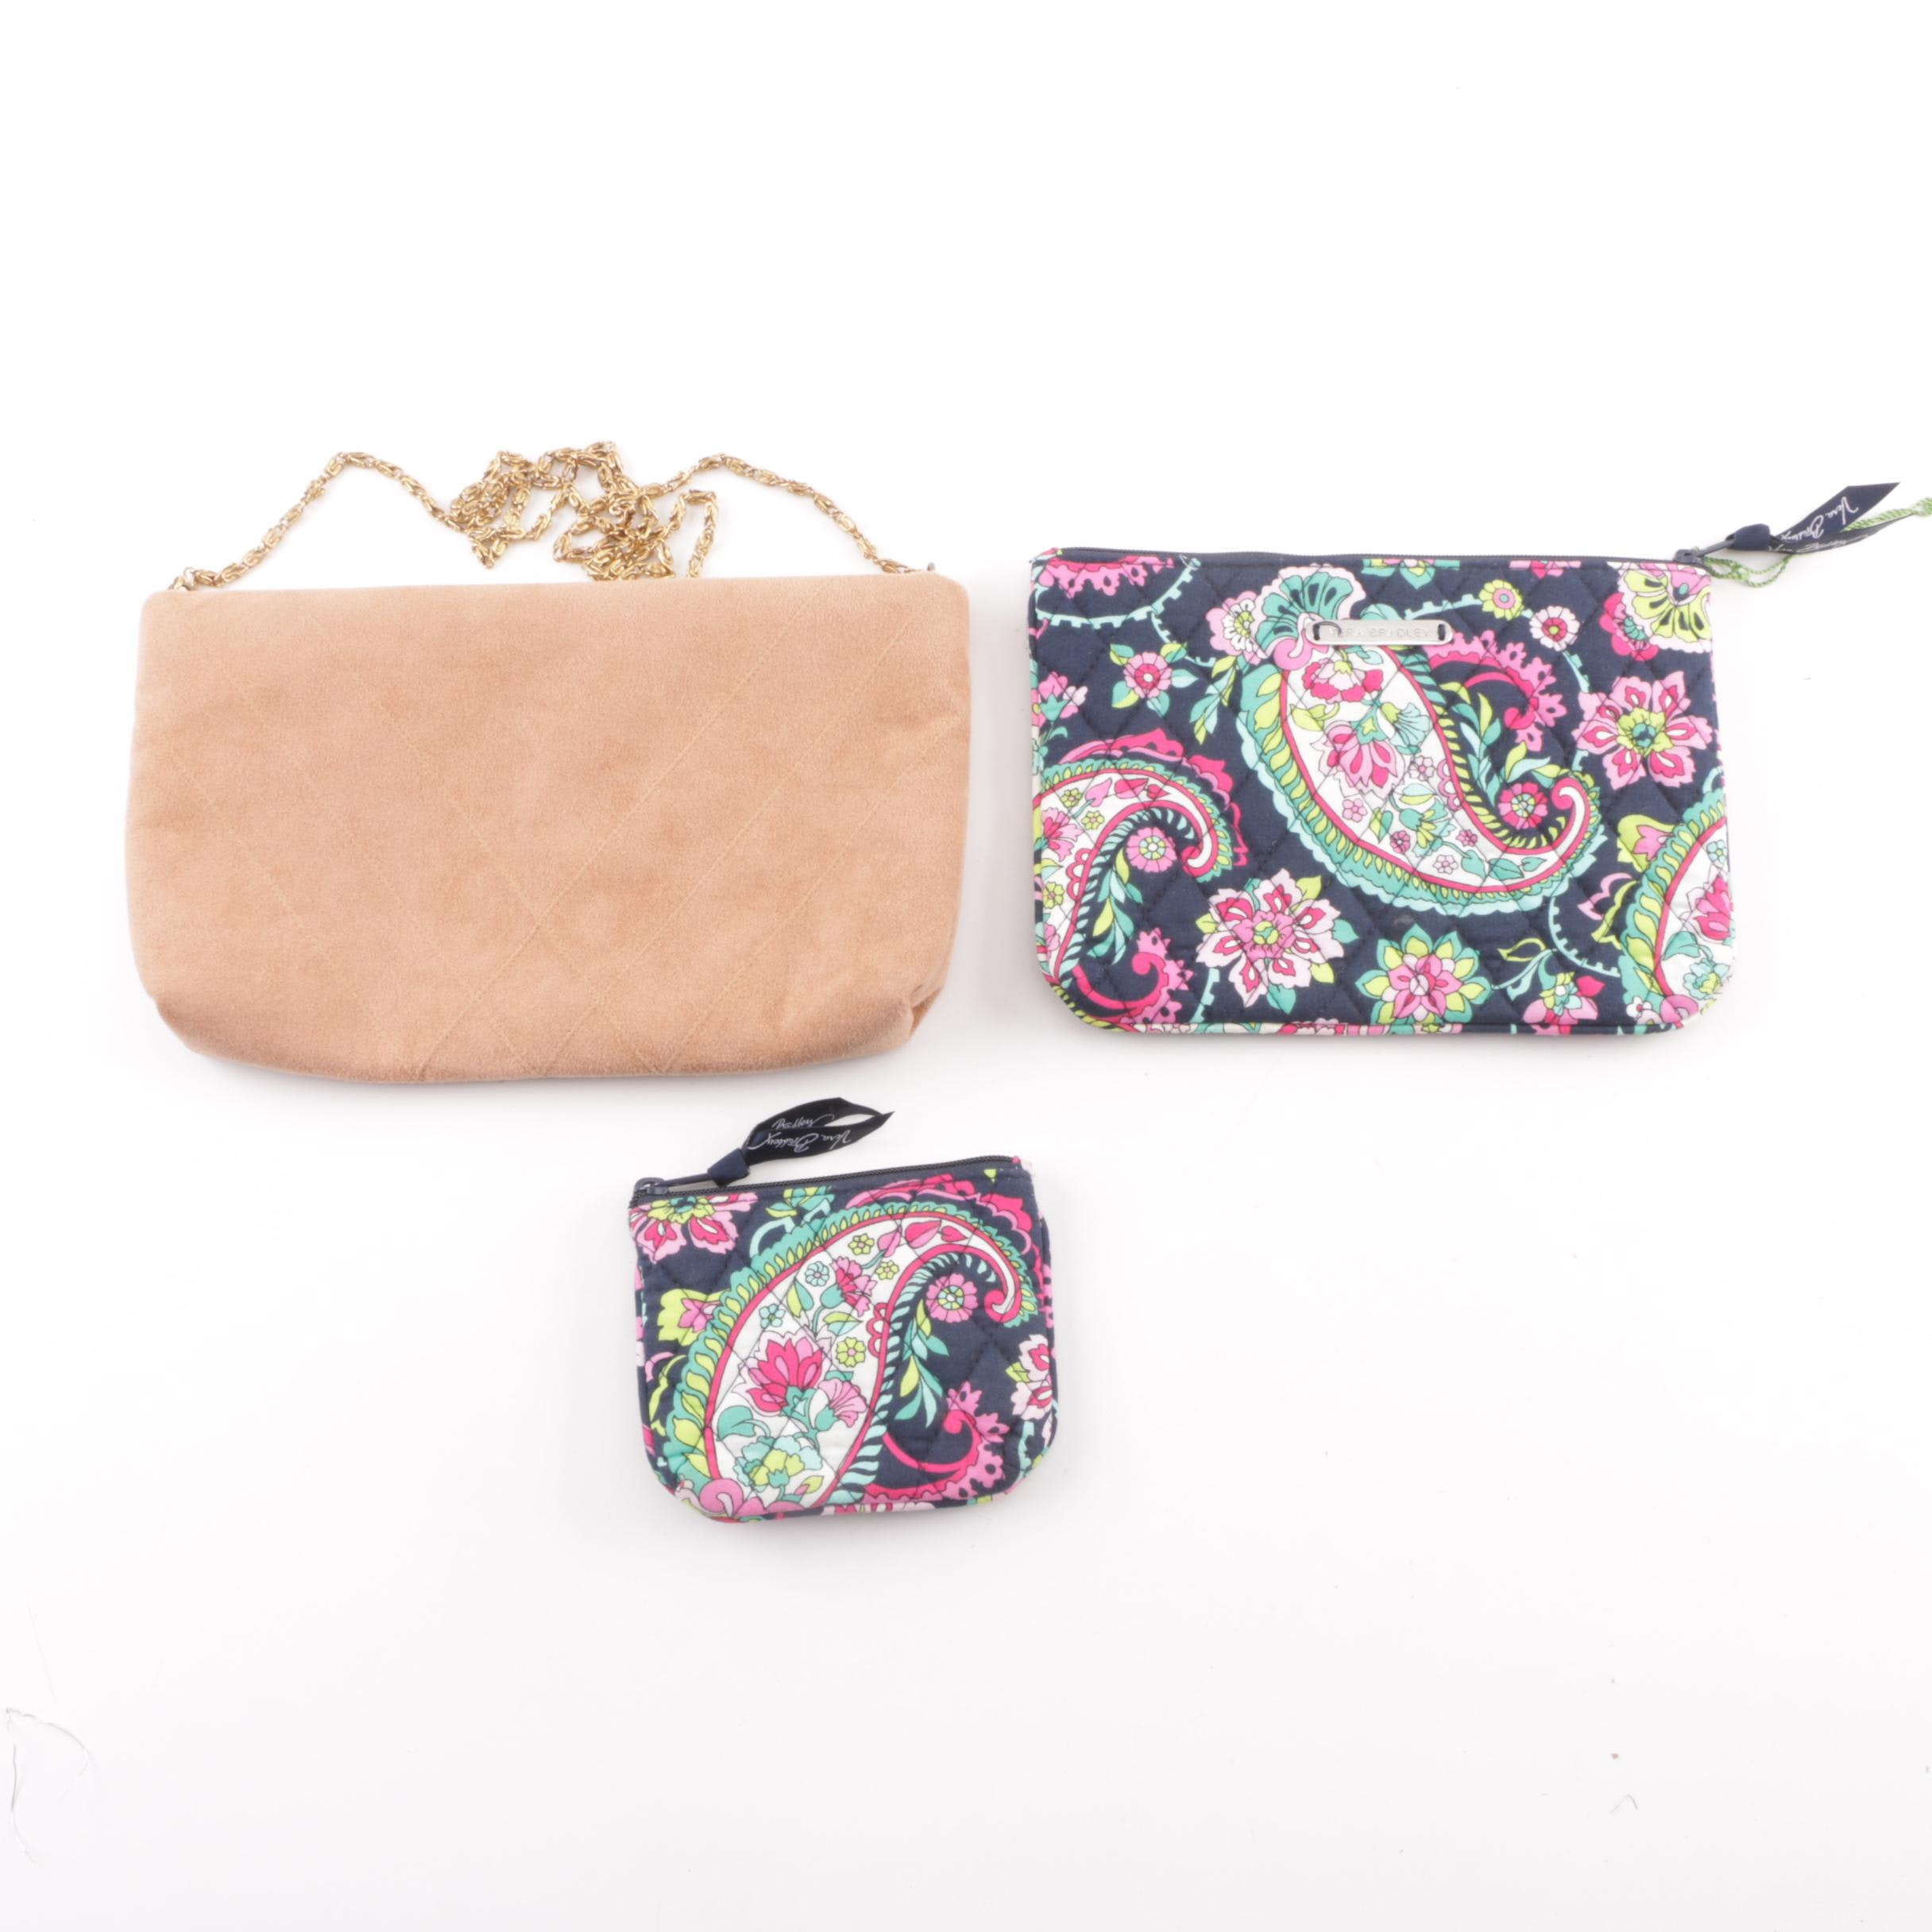 Vera Bradley Quilted Pouches and Dorothy Reeves Faux Suede Crossbody Bag